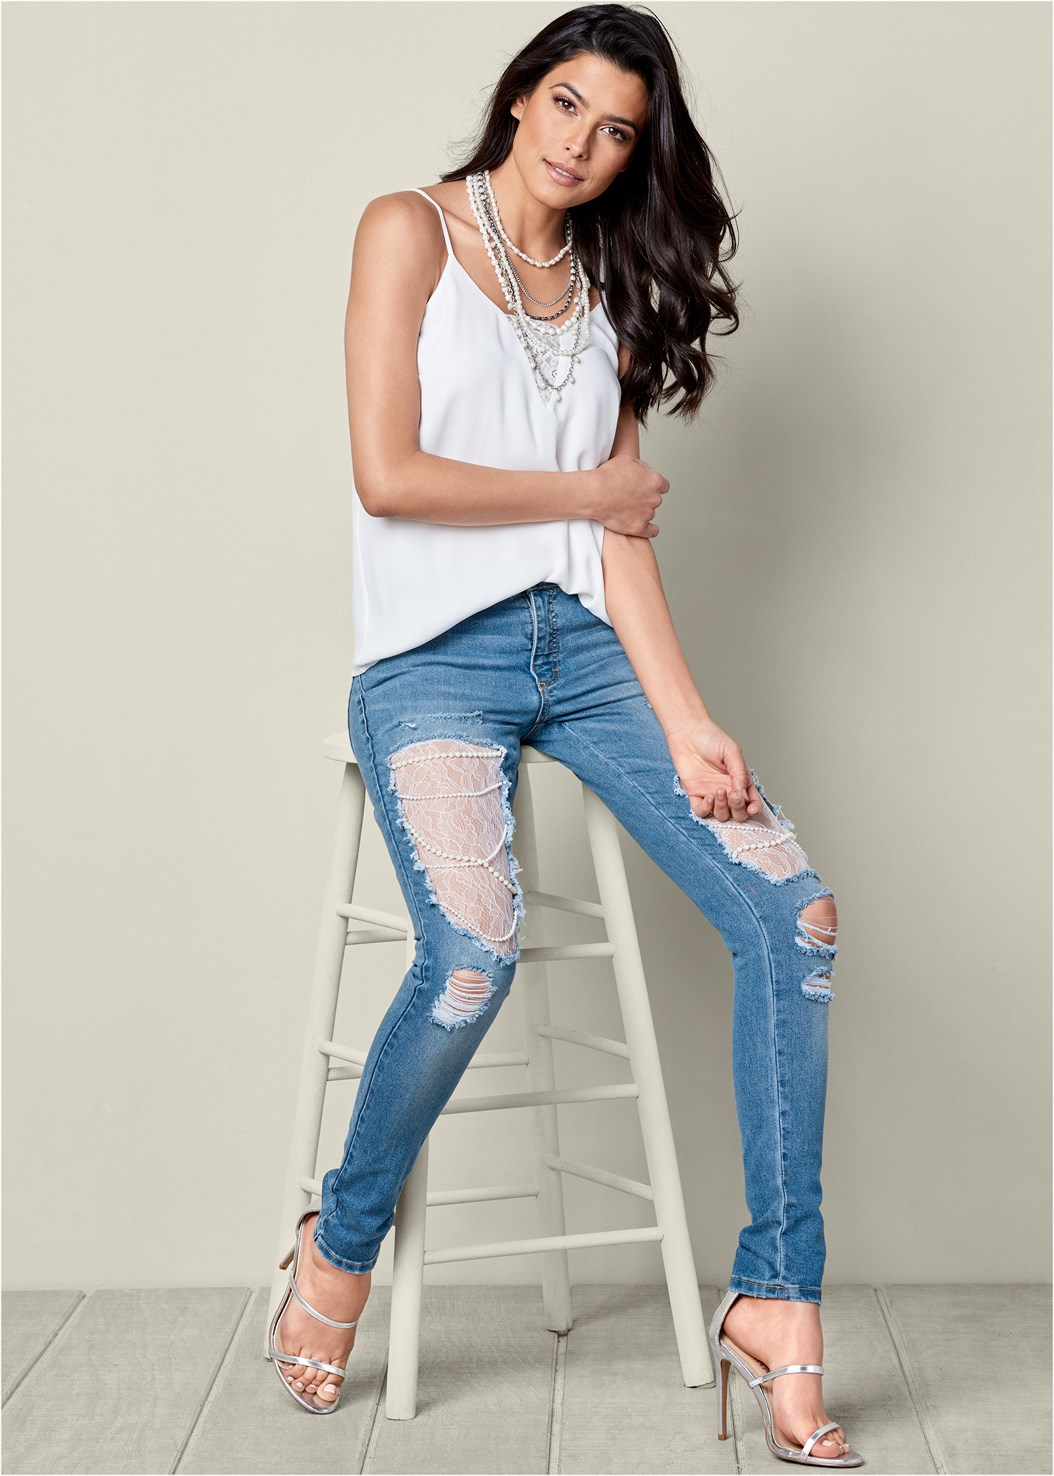 Lace And Pearl Ripped Jeans,High Heel Strappy Sandals